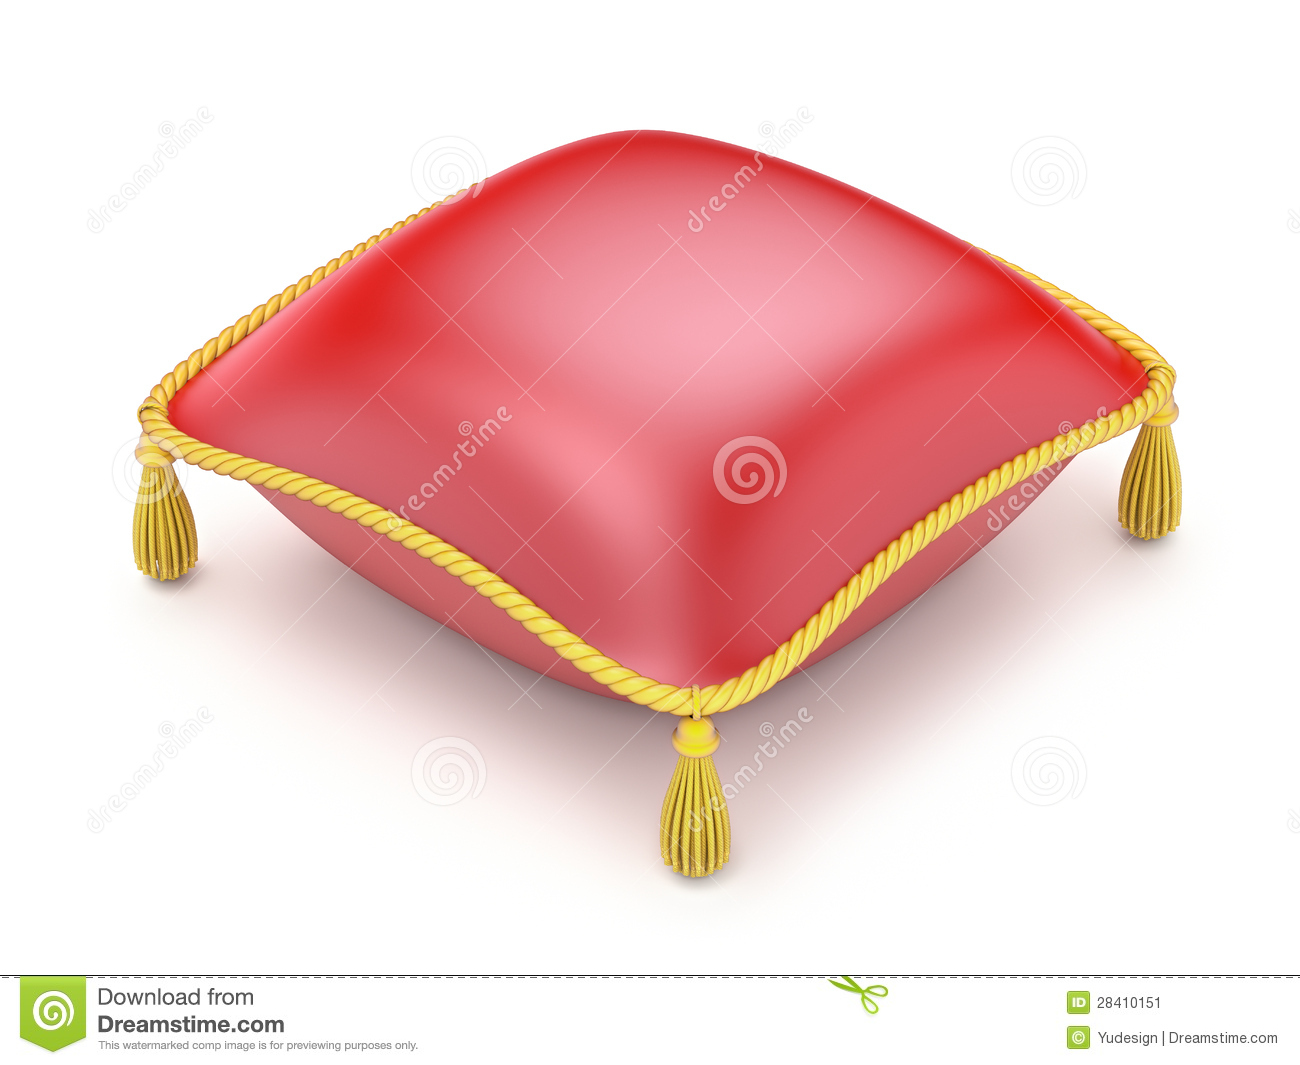 Red Pillow Over White Background   3d Illustration